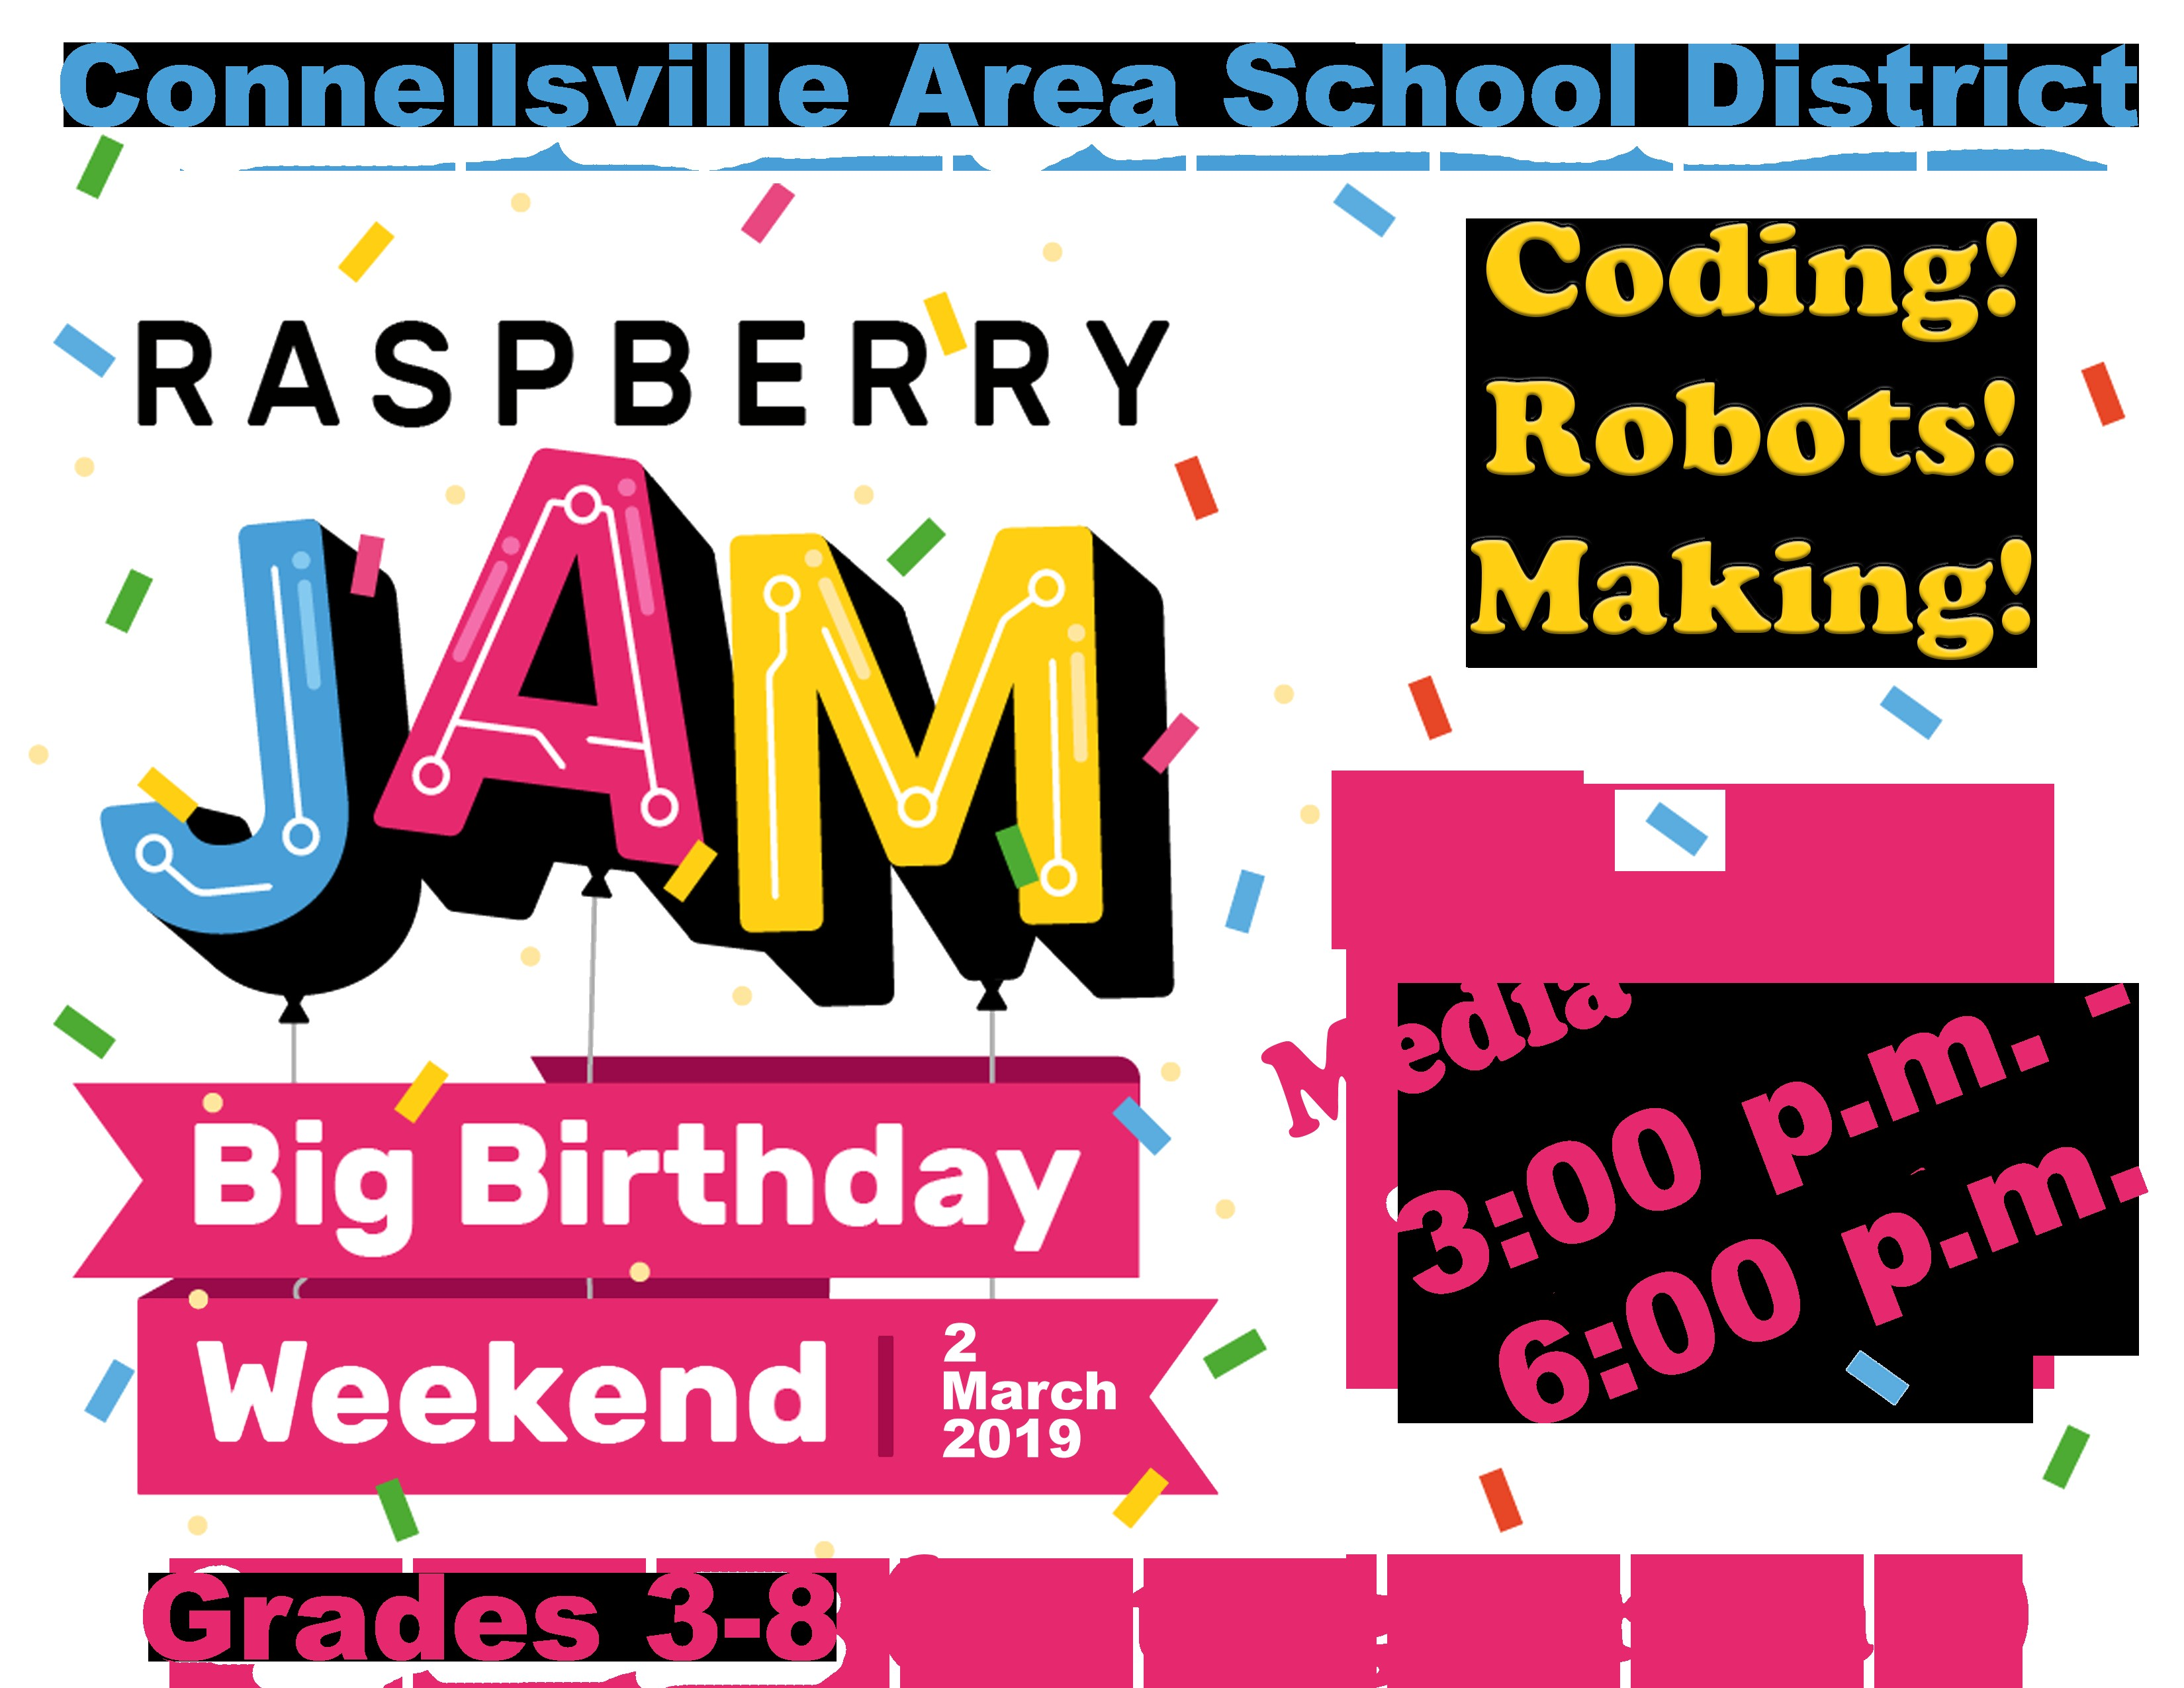 Students in grades 3 8 are invited to the Raspberry Pi Jam on March 2 2019 from 3 00 6 00pm at the High School s iMedia Center e explore coding robots